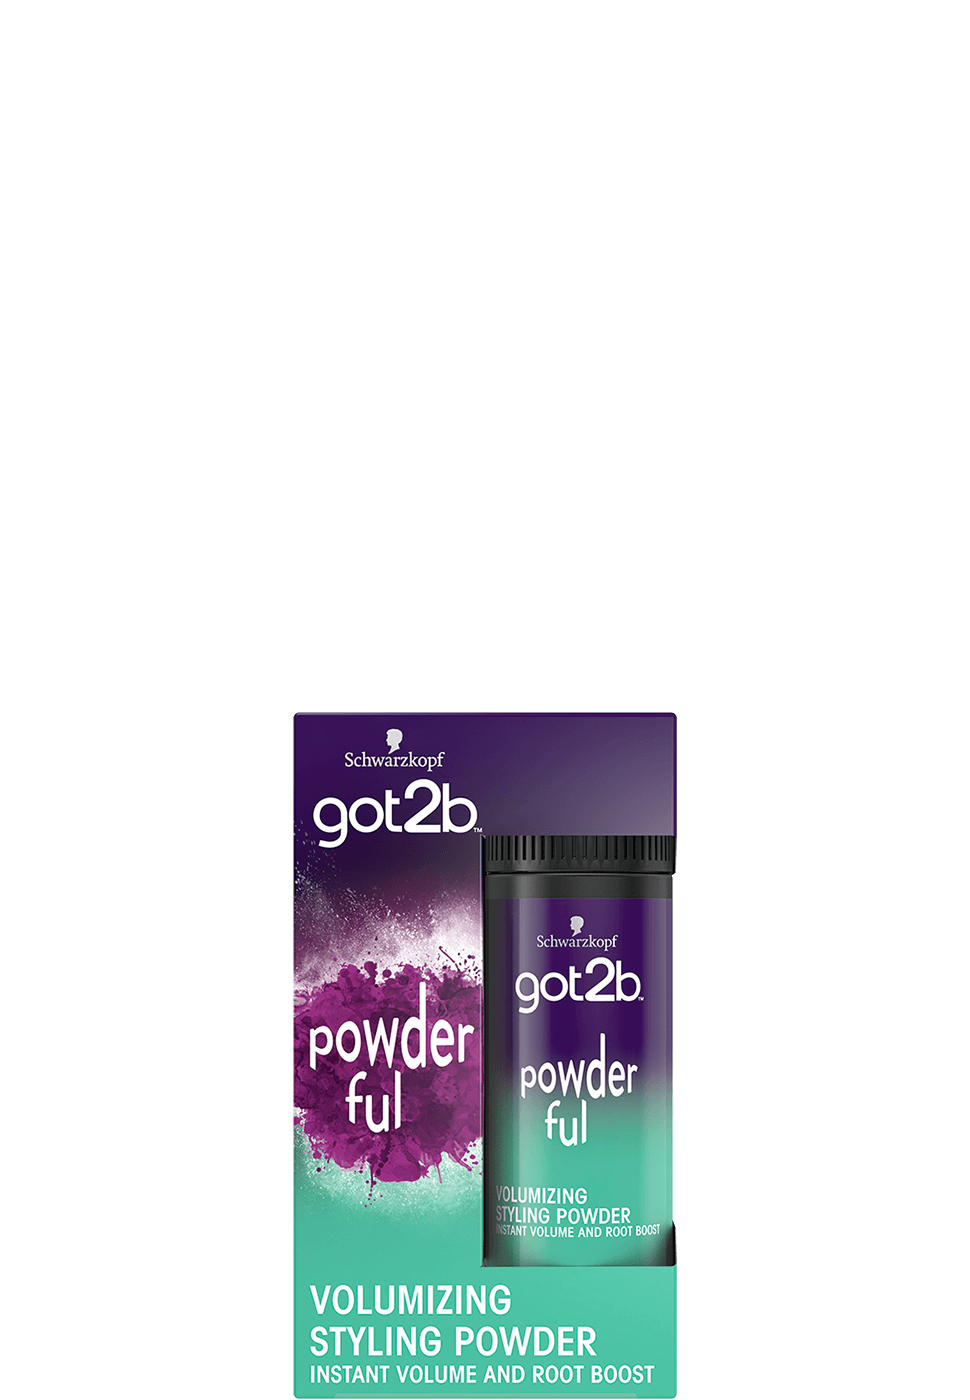 got2b_com_powderful_styling_powder_970x1400